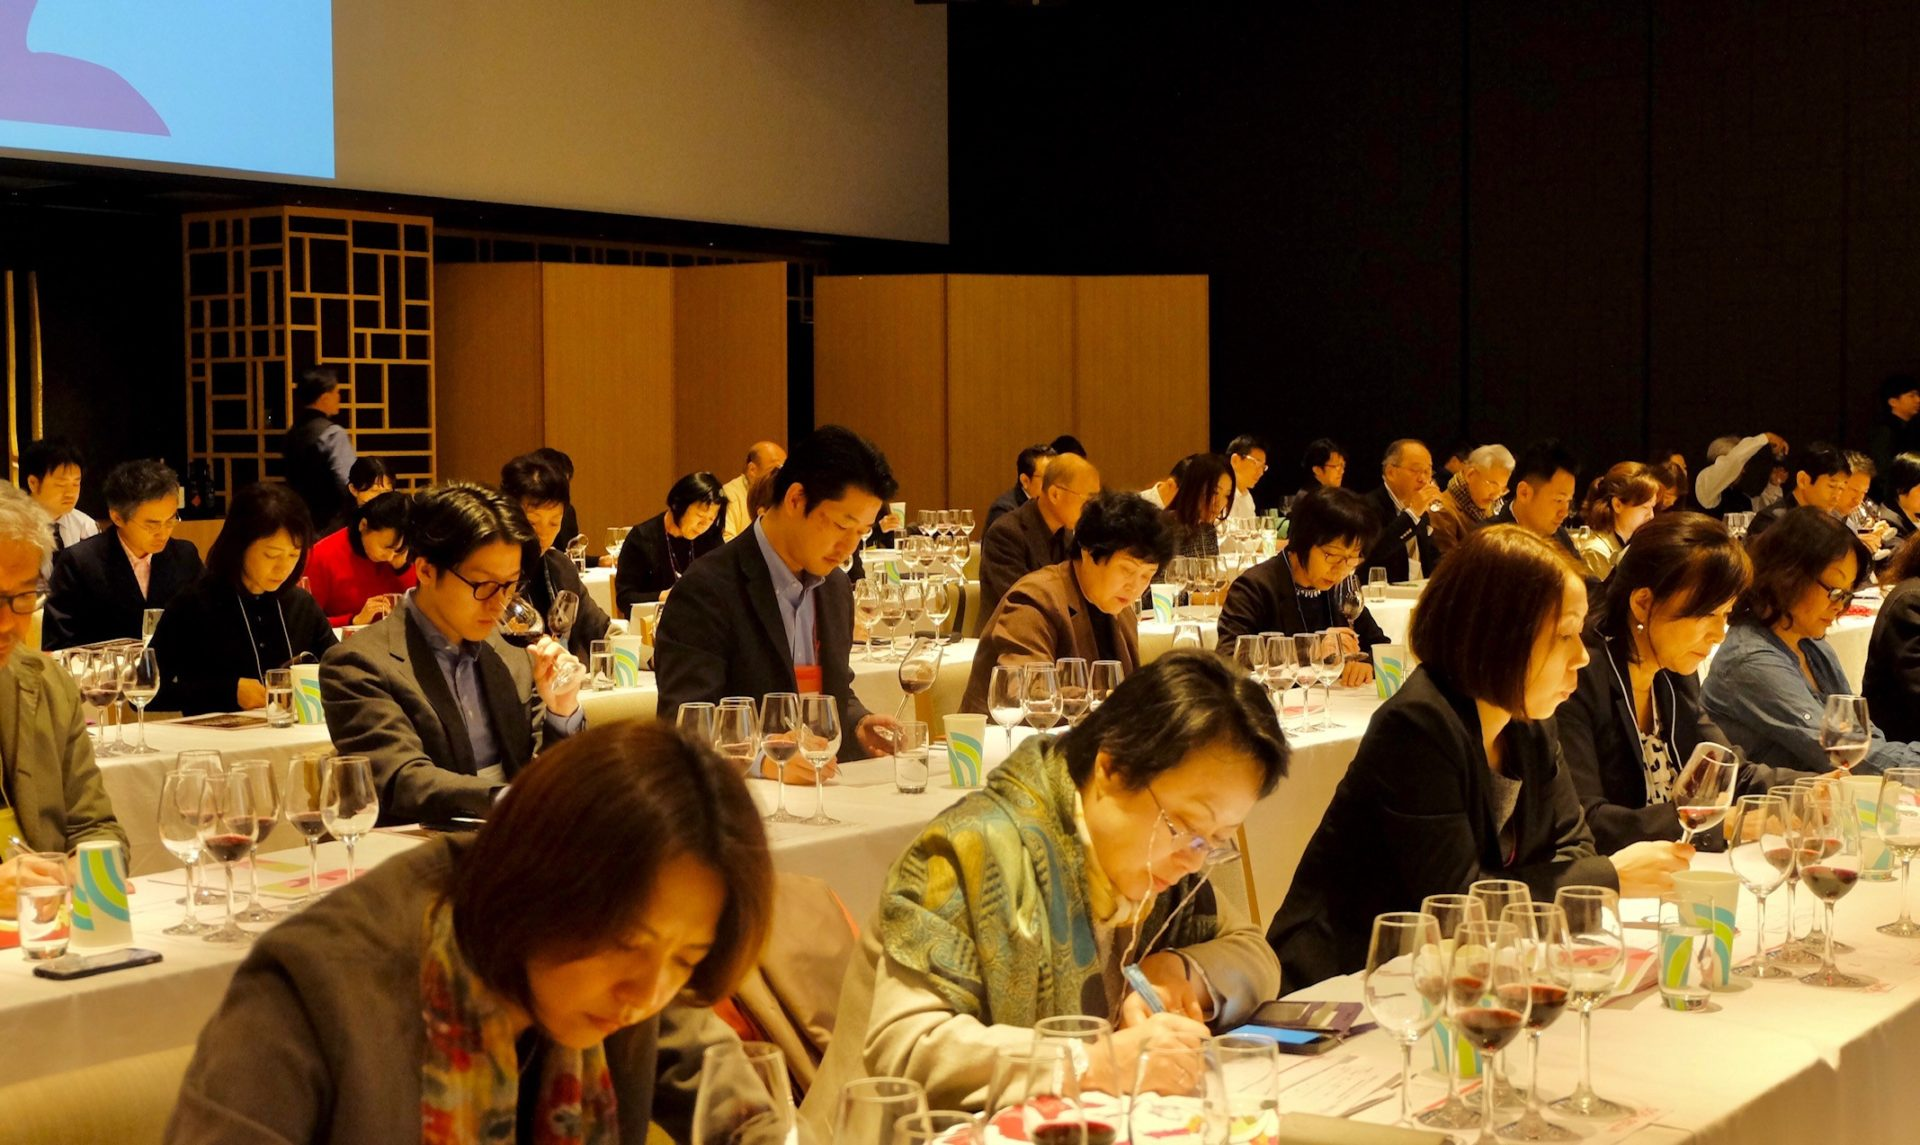 Rioja wines touch down in Japan